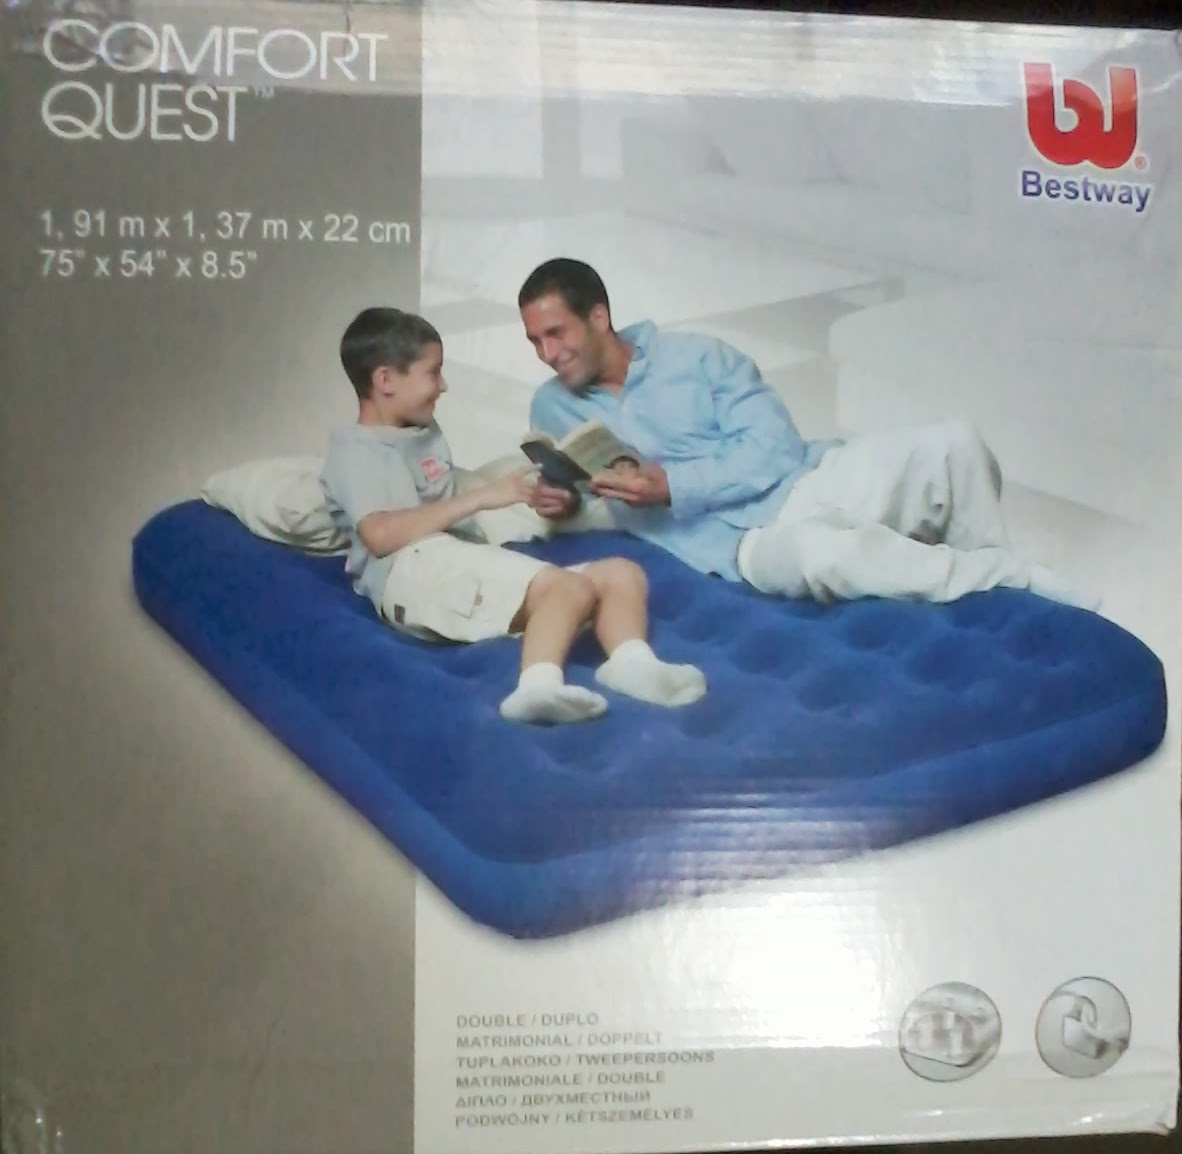 Jual kasur angin best way double murah 200ribu importir for Bestway vs intex